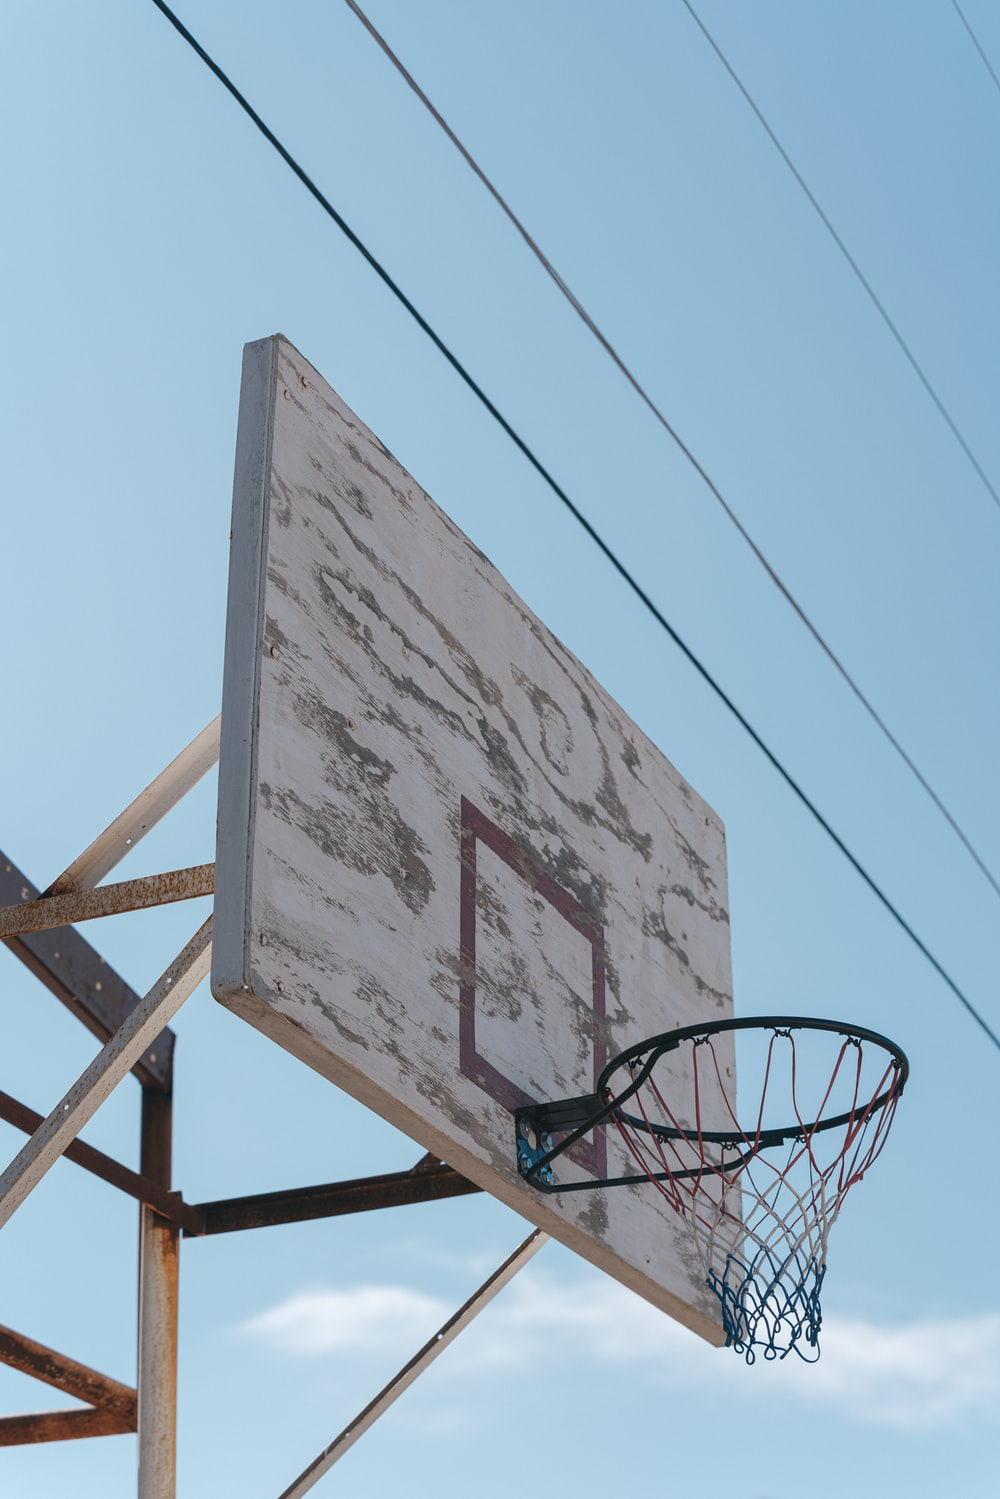 basketball hoop under blue sky during daytime